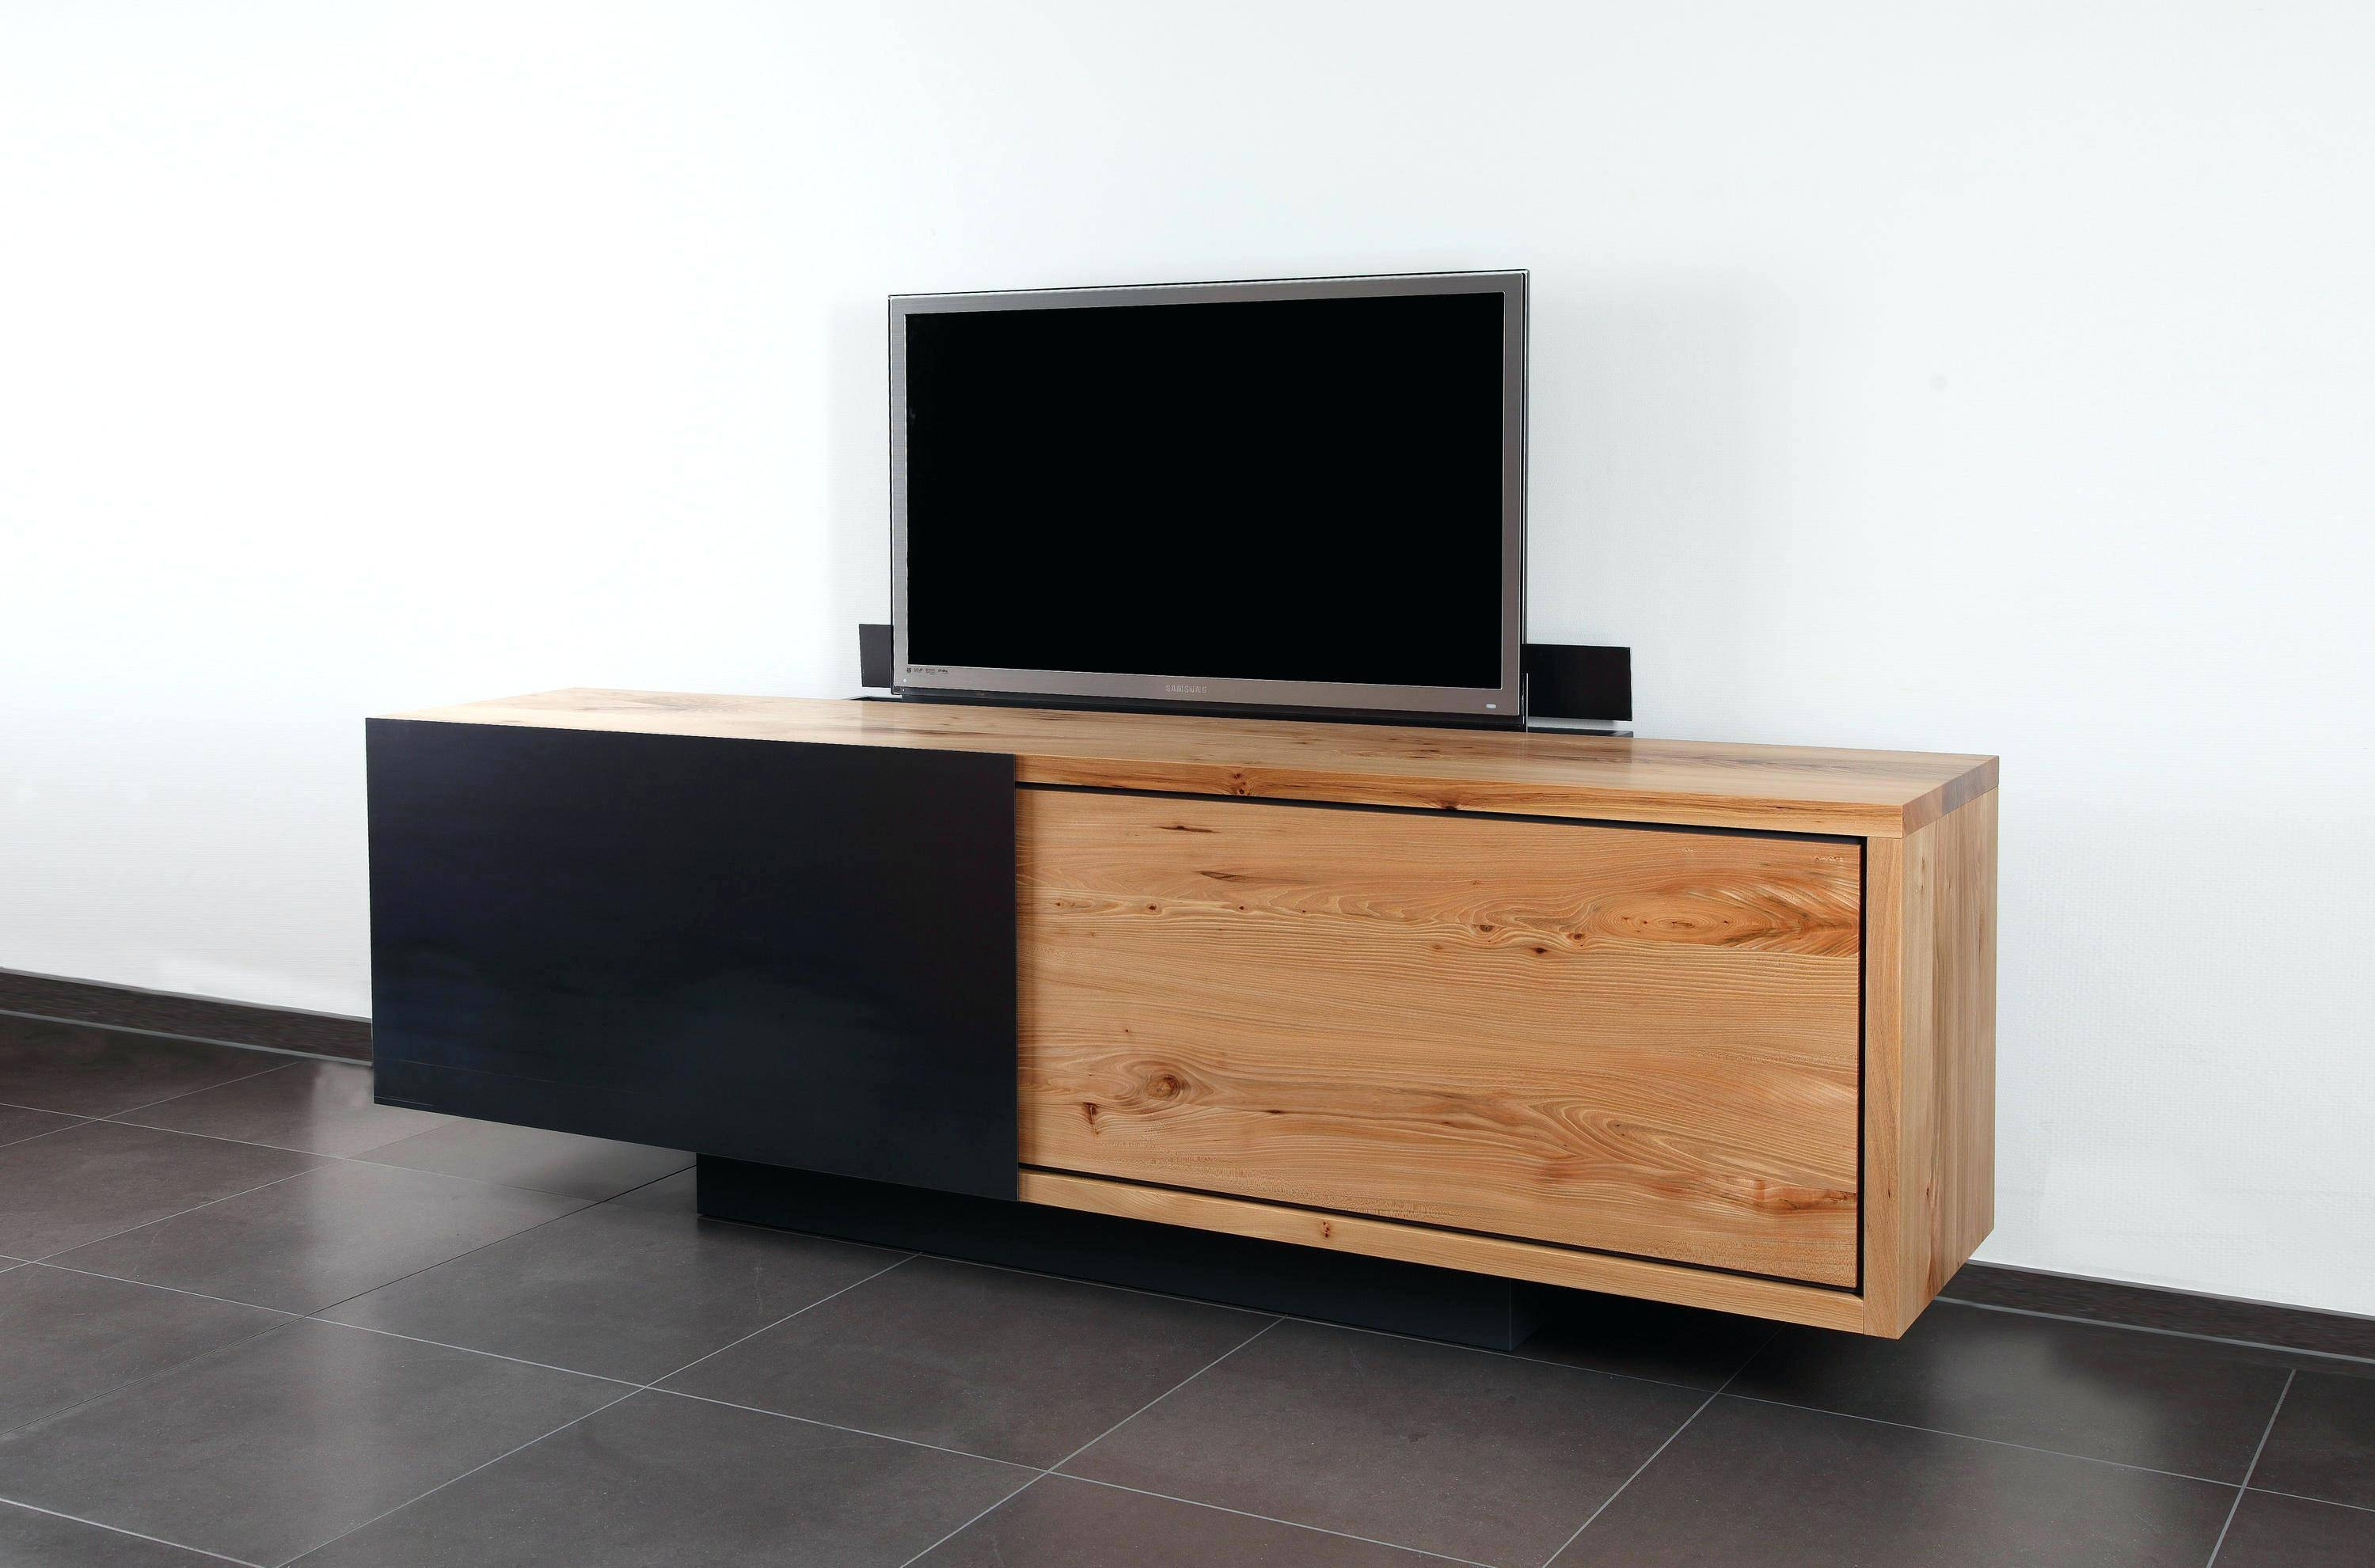 Design Sideboardign Sideboards Modern And Buffets Australia with Modern Sideboards and Buffets (Image 6 of 15)